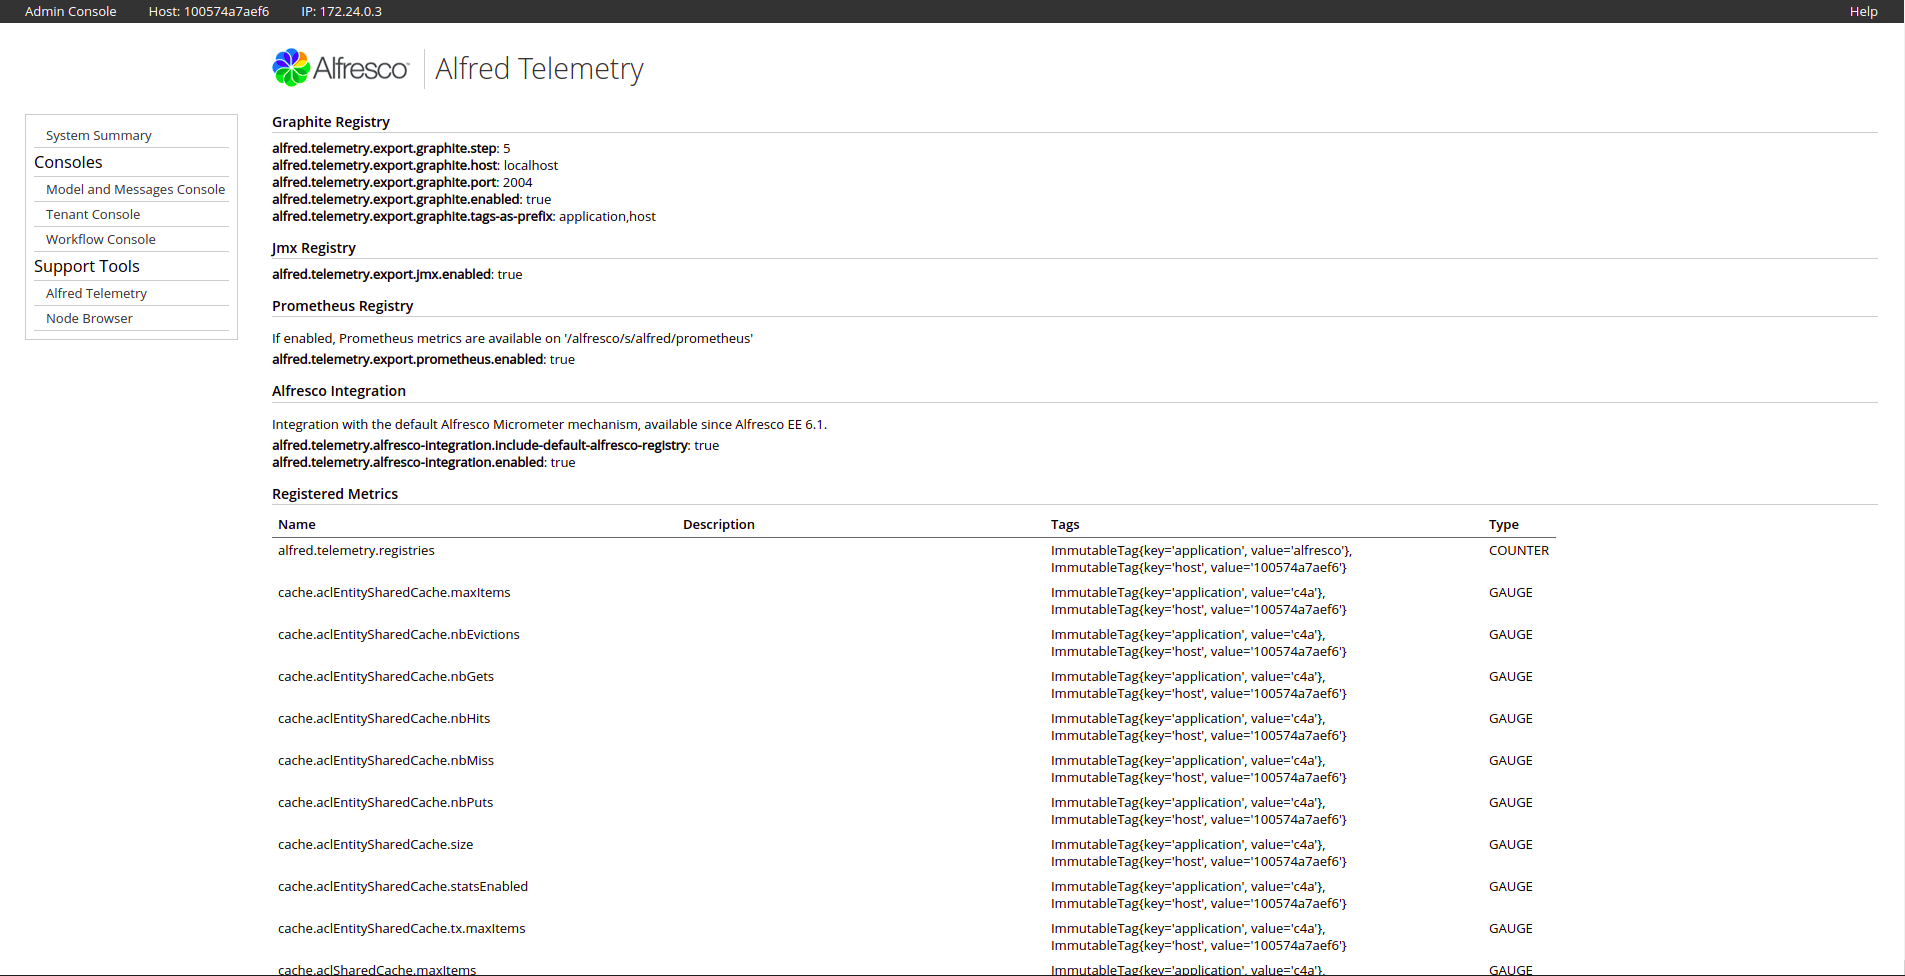 Alfred Telemetry for Alfresco